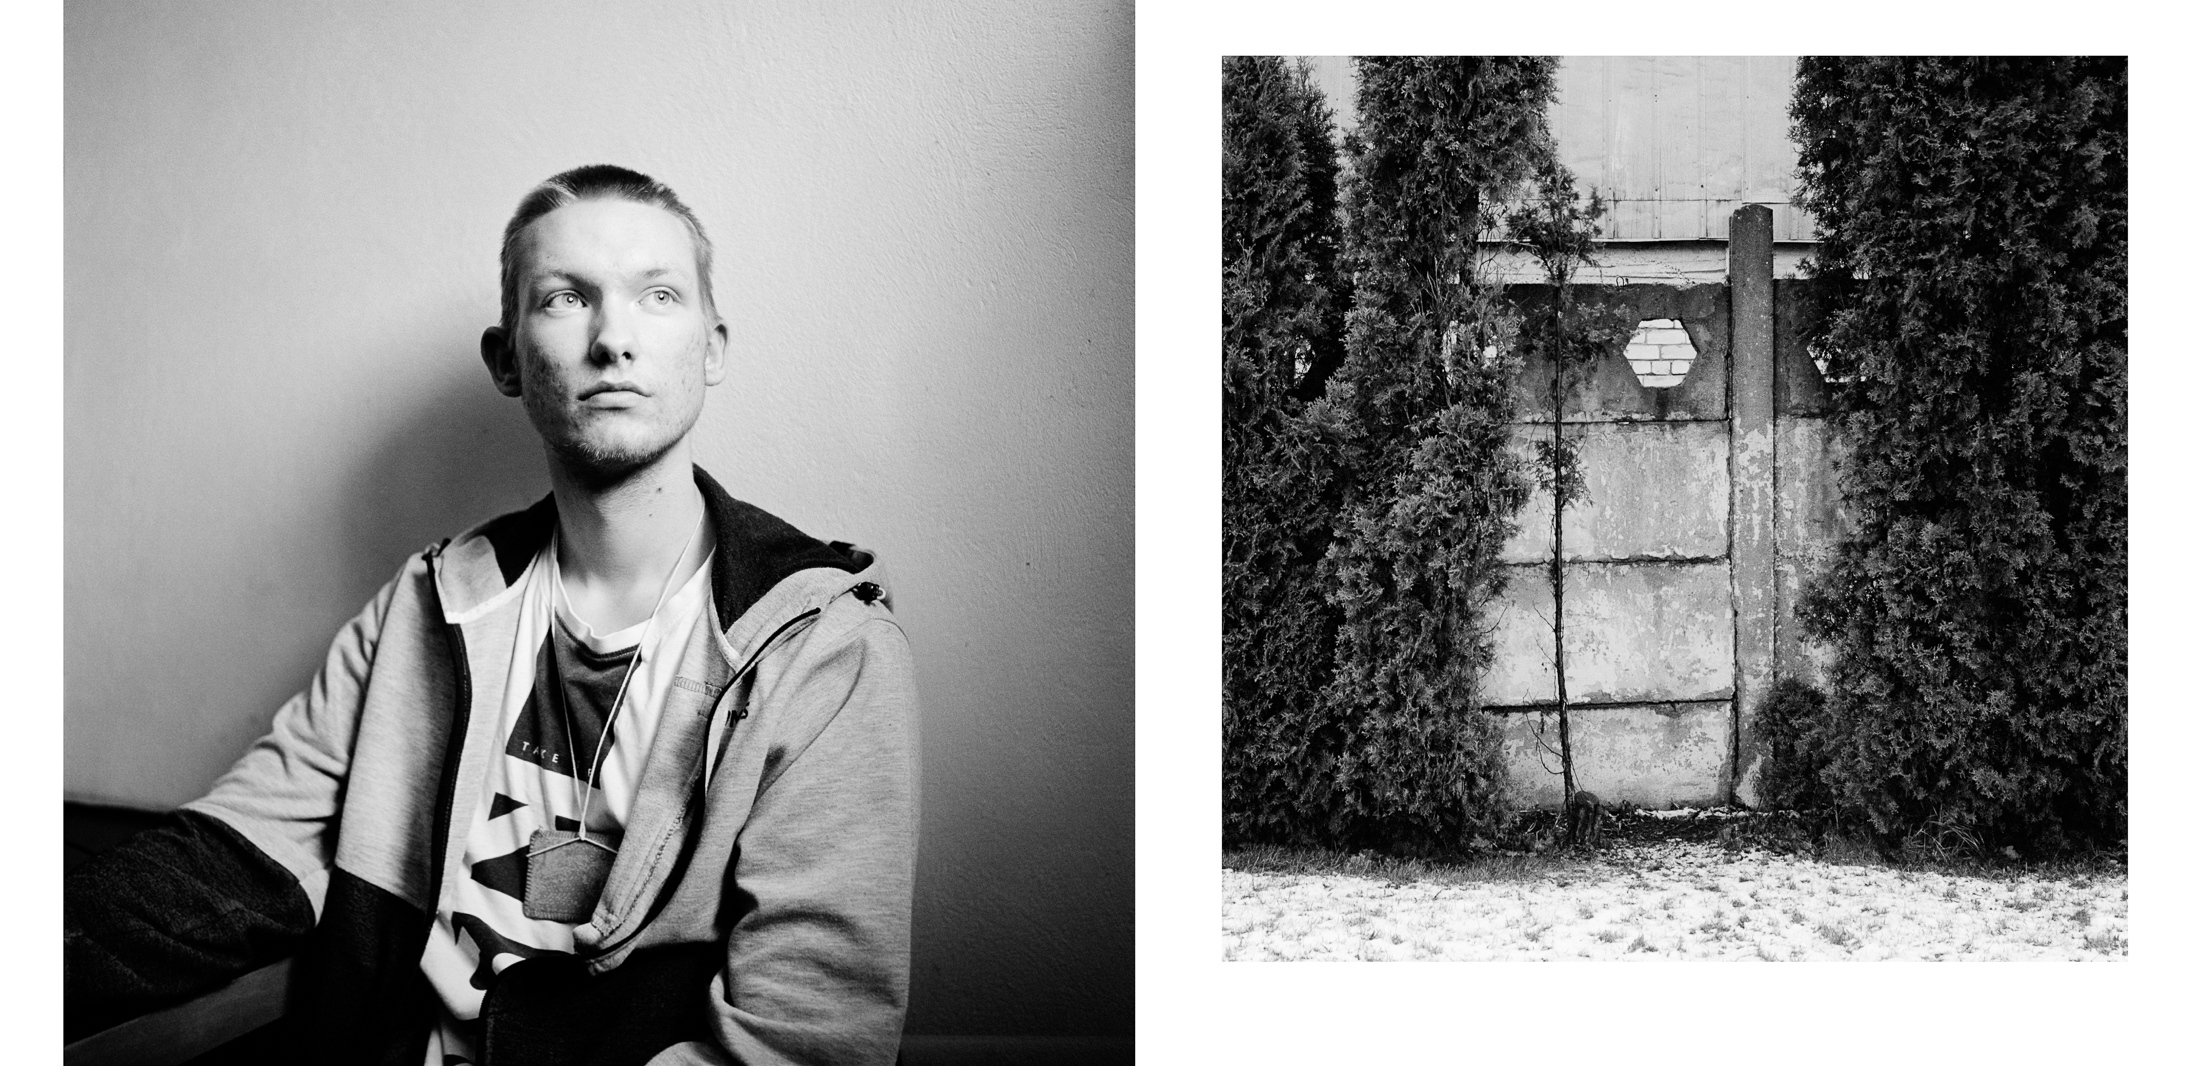 Dāvis , 17 years old. He does not speak much. Dāvis often seems absent. I photographed him in his cell. He asked me to photograph around the club where he was canoeing in the city of Jelgava. I find this opening sequence in the wall. (photos: Jérémie)